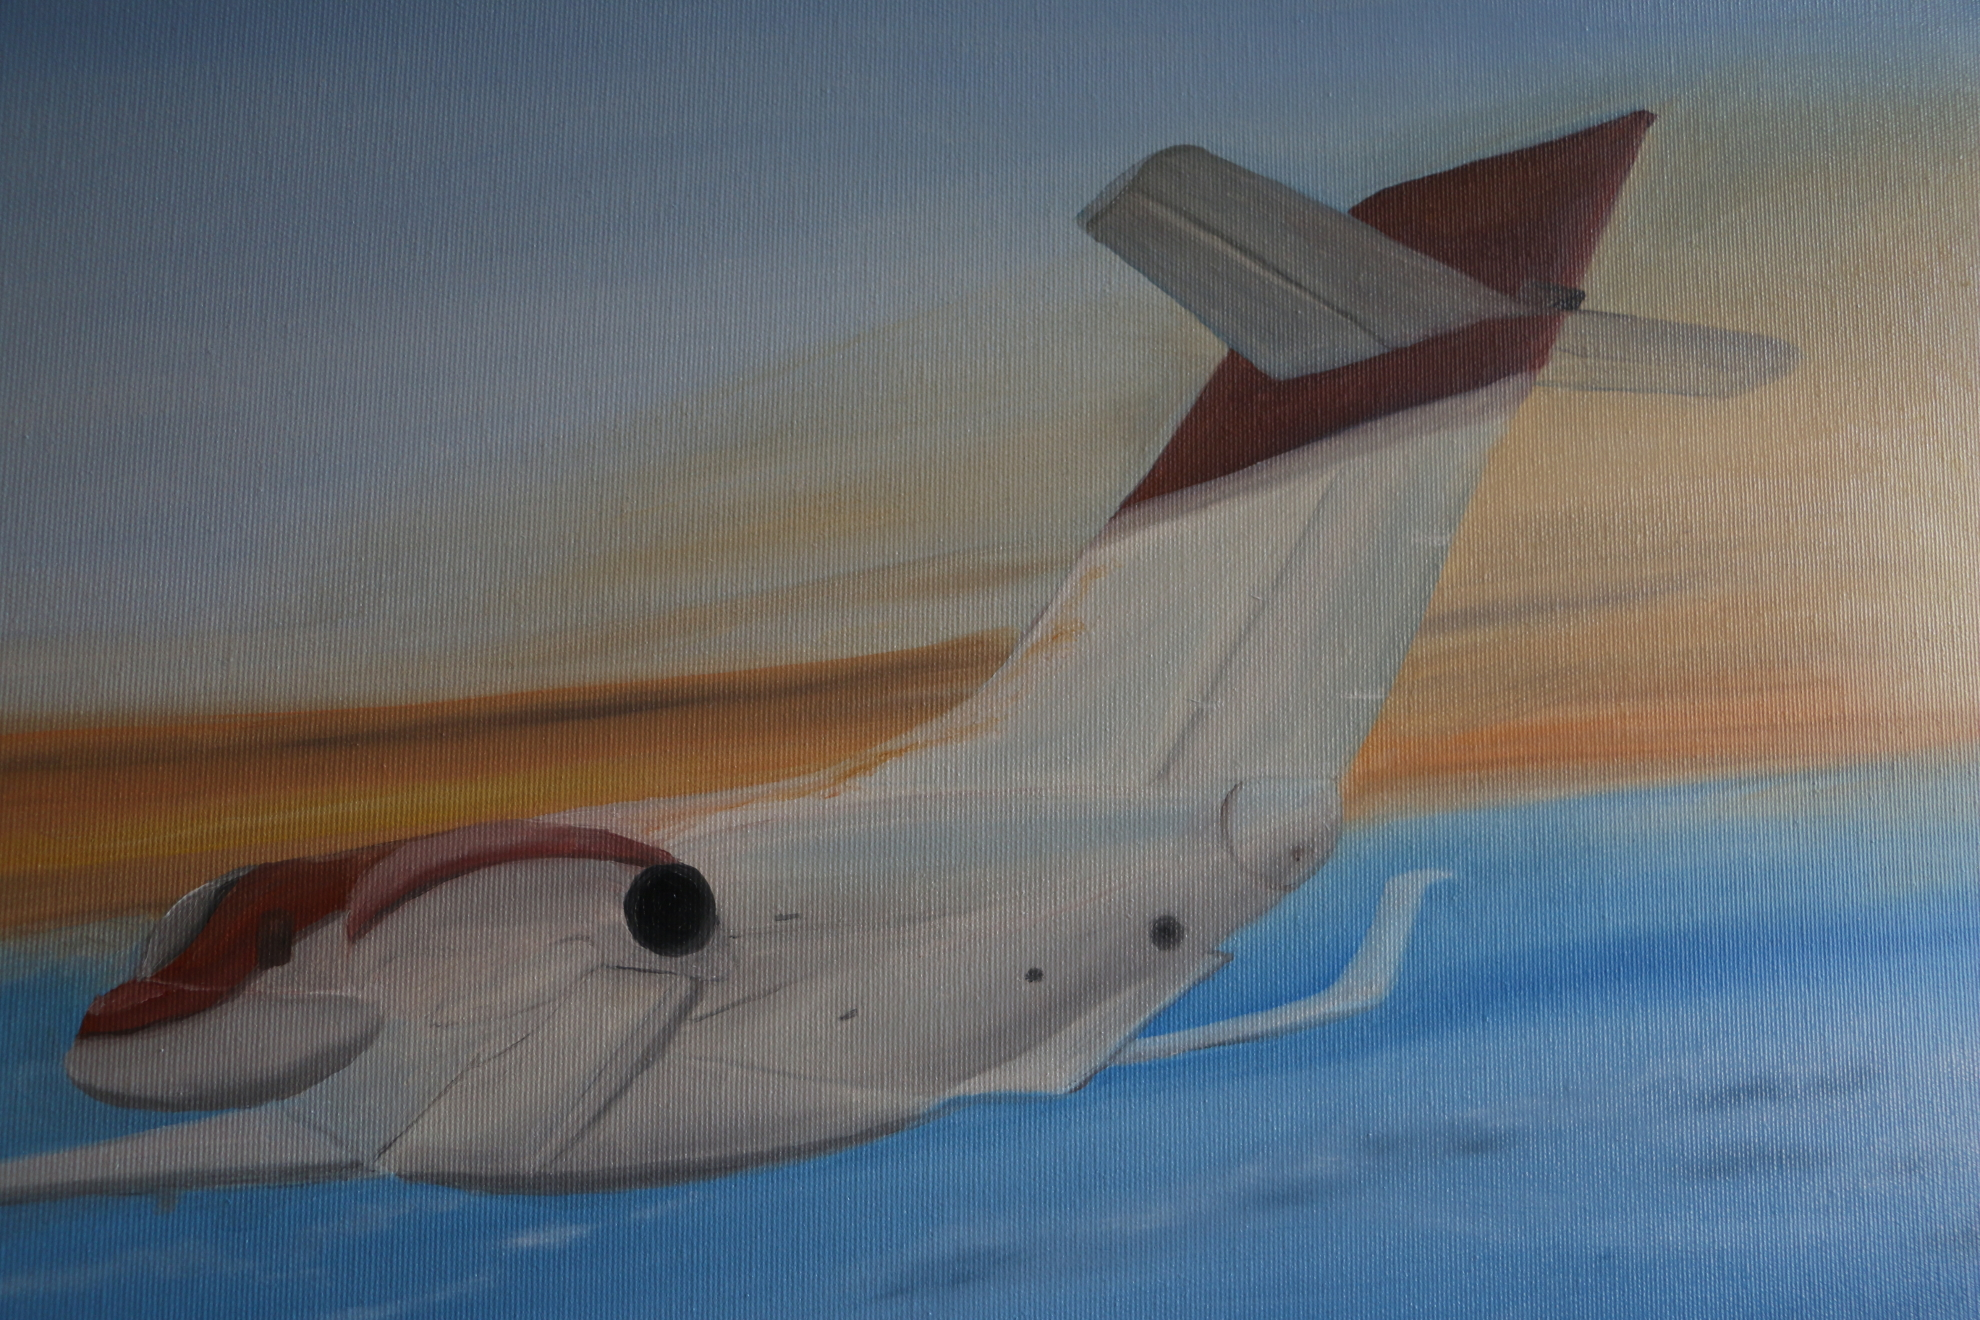 Detail view: airplane